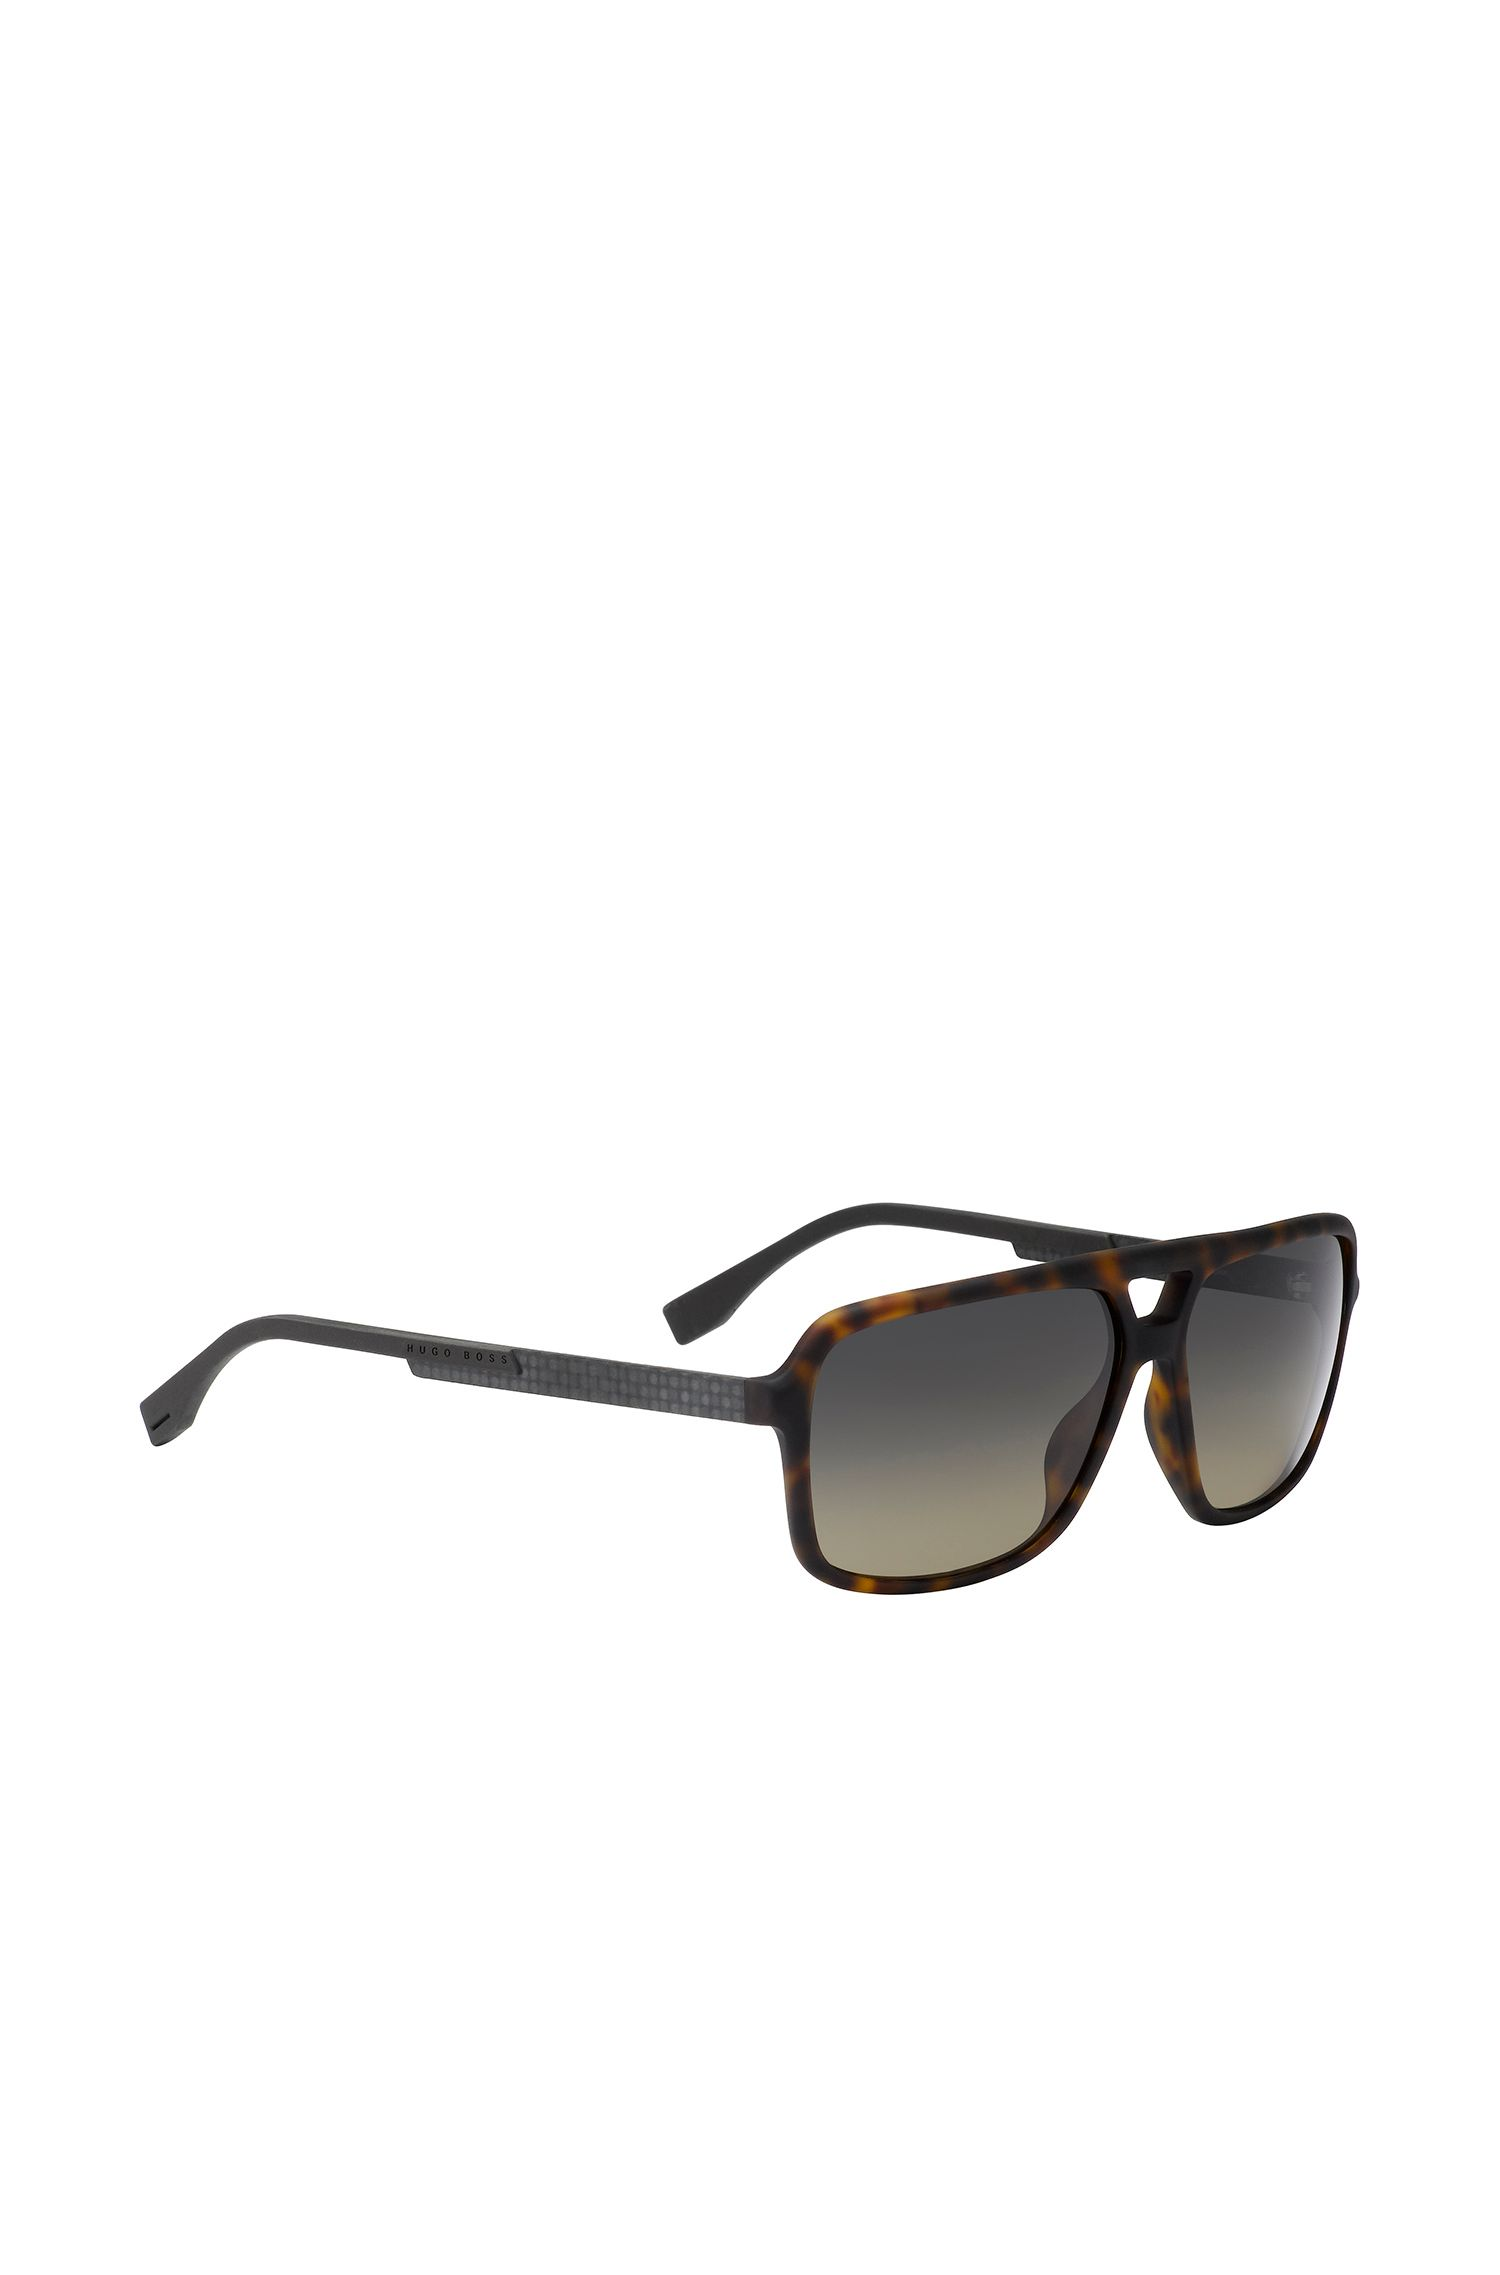 Green Grey Lens Navigator Sunglasses | BOSS 0772S, Assorted-Pre-Pack